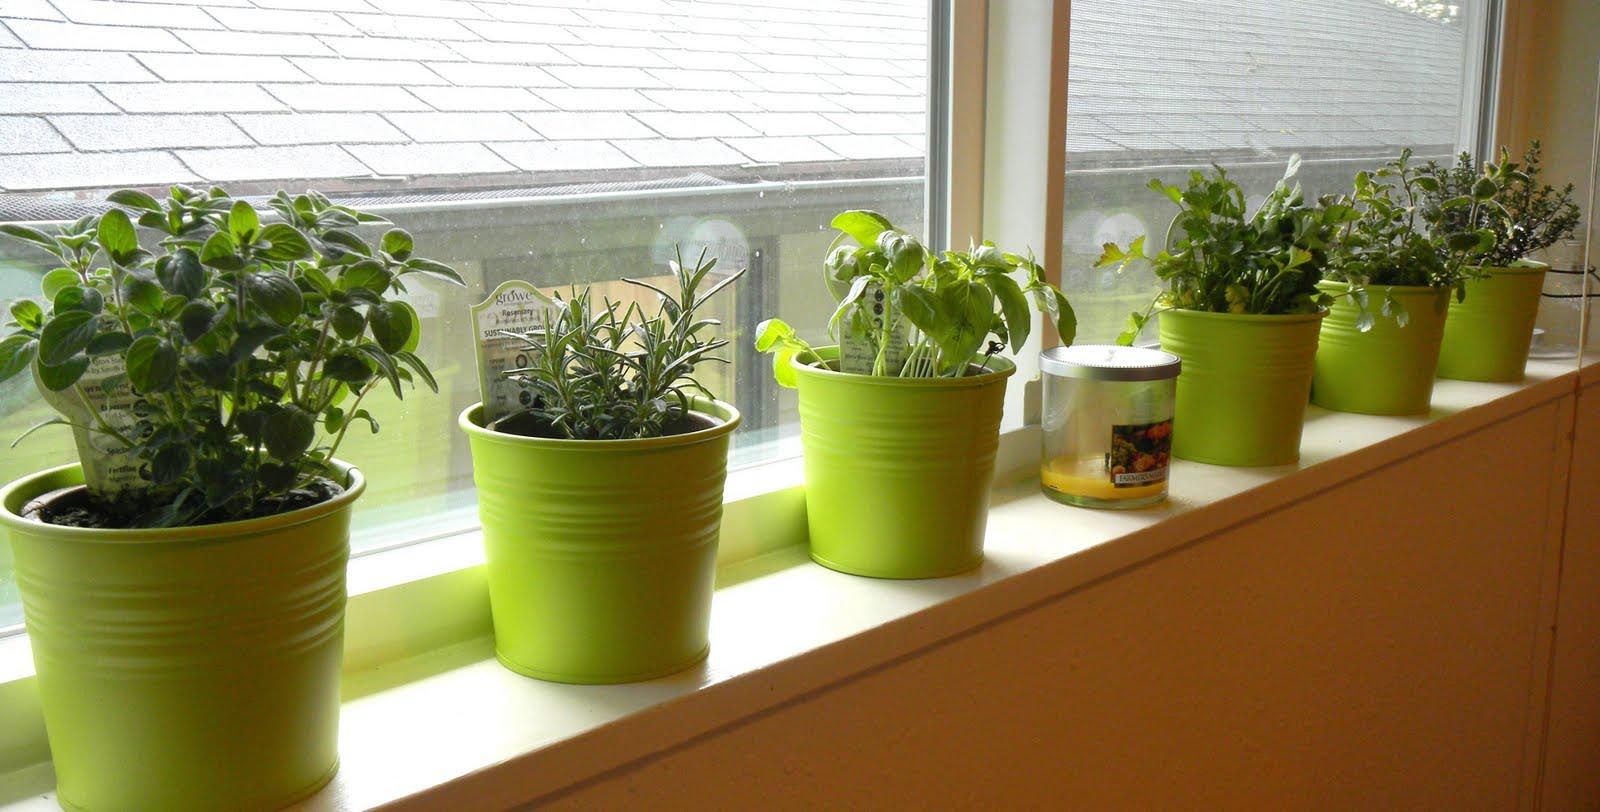 Kitchen Window Herb Garden Kit Garden Design Ideas